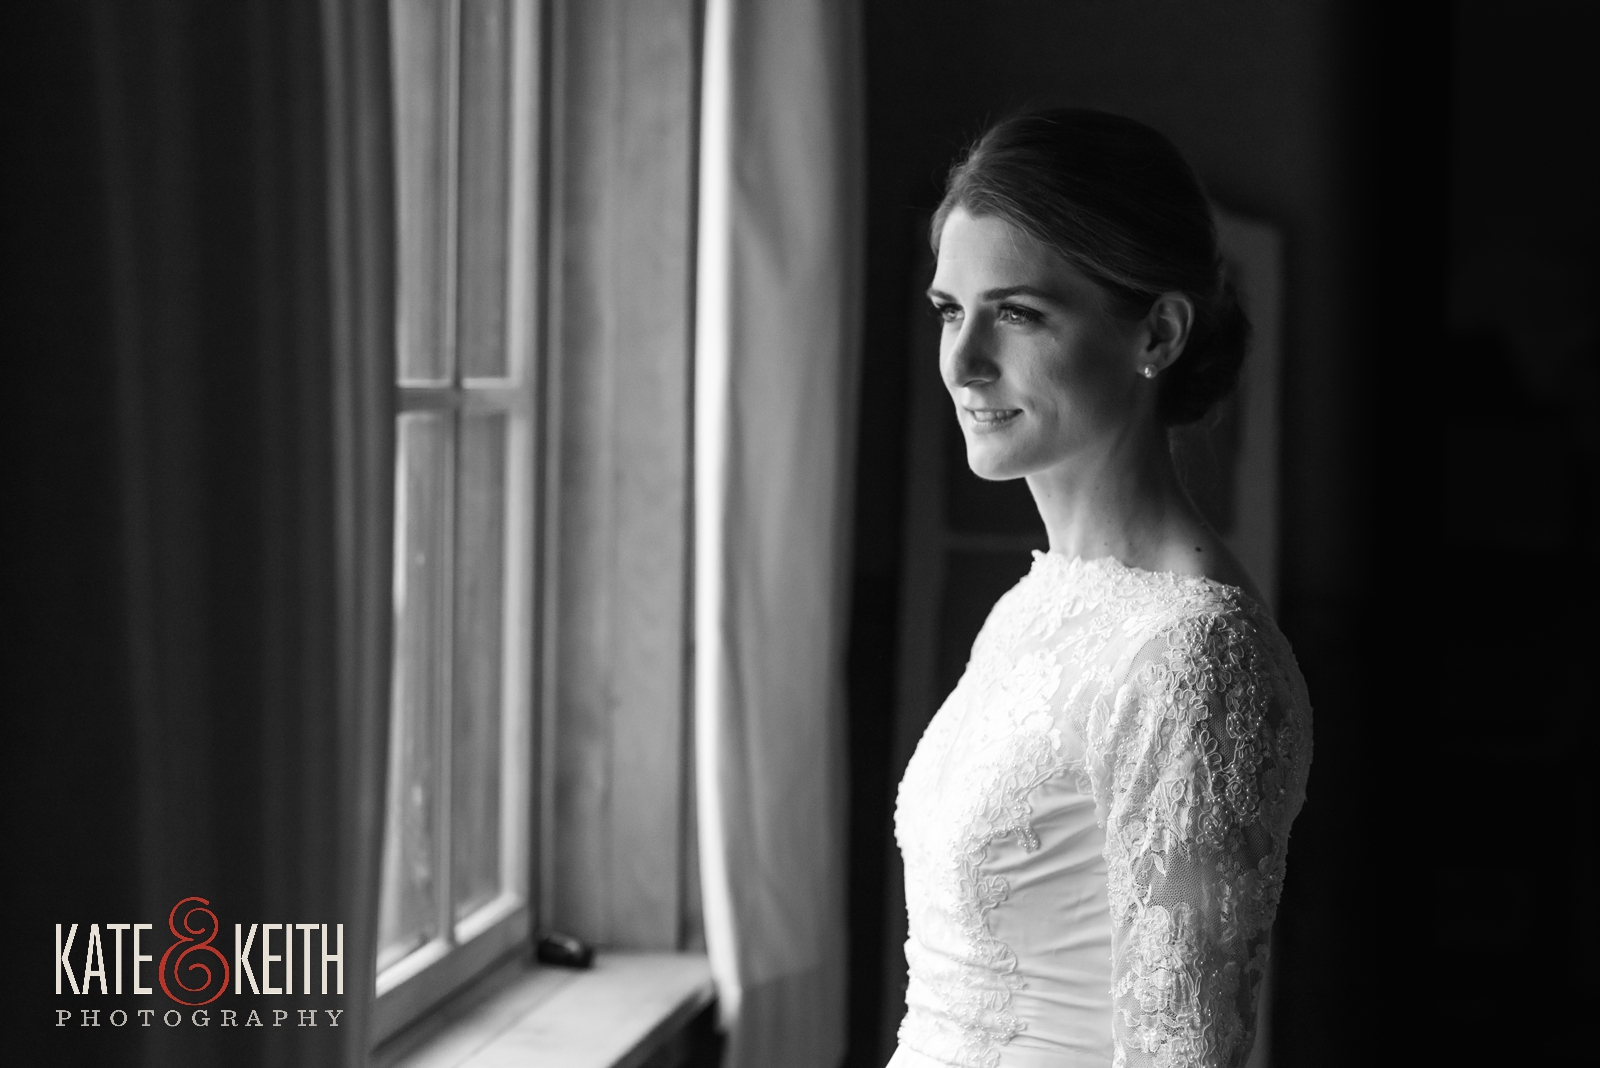 Barn on the Pemi, Your Dream Bridal shop, Bliss Studios makeup, bridal portrait, black and white, bride, lace wedding gown, winter wedding, long sleeved wedding gown, natural portraits, candid portraiture, real moment